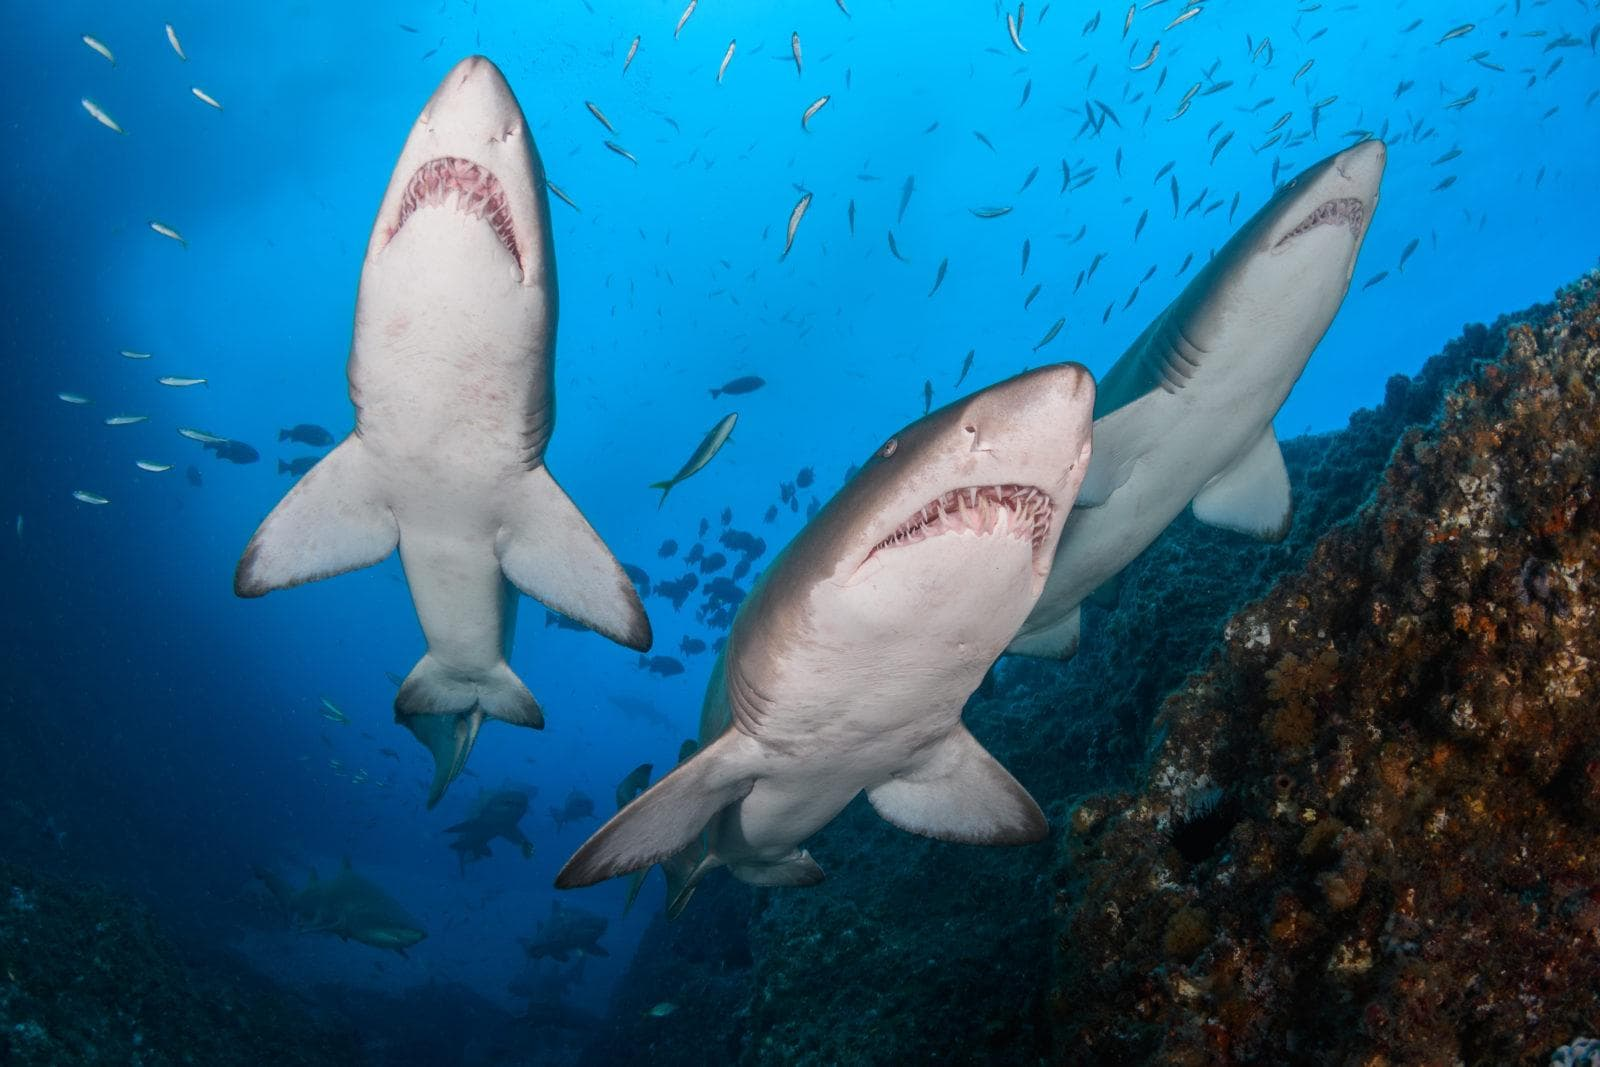 The warm and even light helps nicely lighting big scenes, sharks captured by Retra Flash Pro